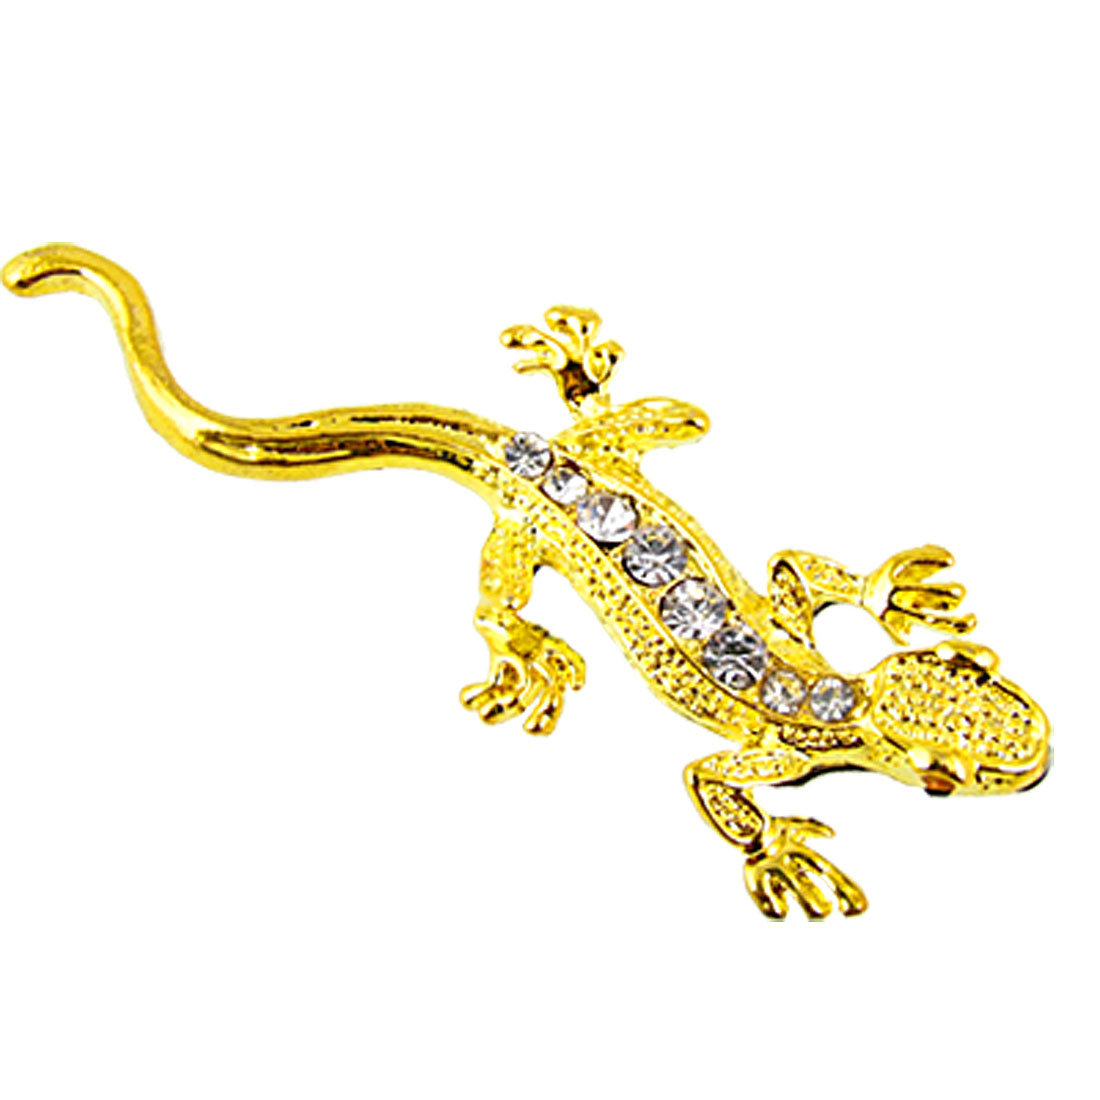 Car Auto Gold Tone Metal Emblem Gecko Sticker Decal